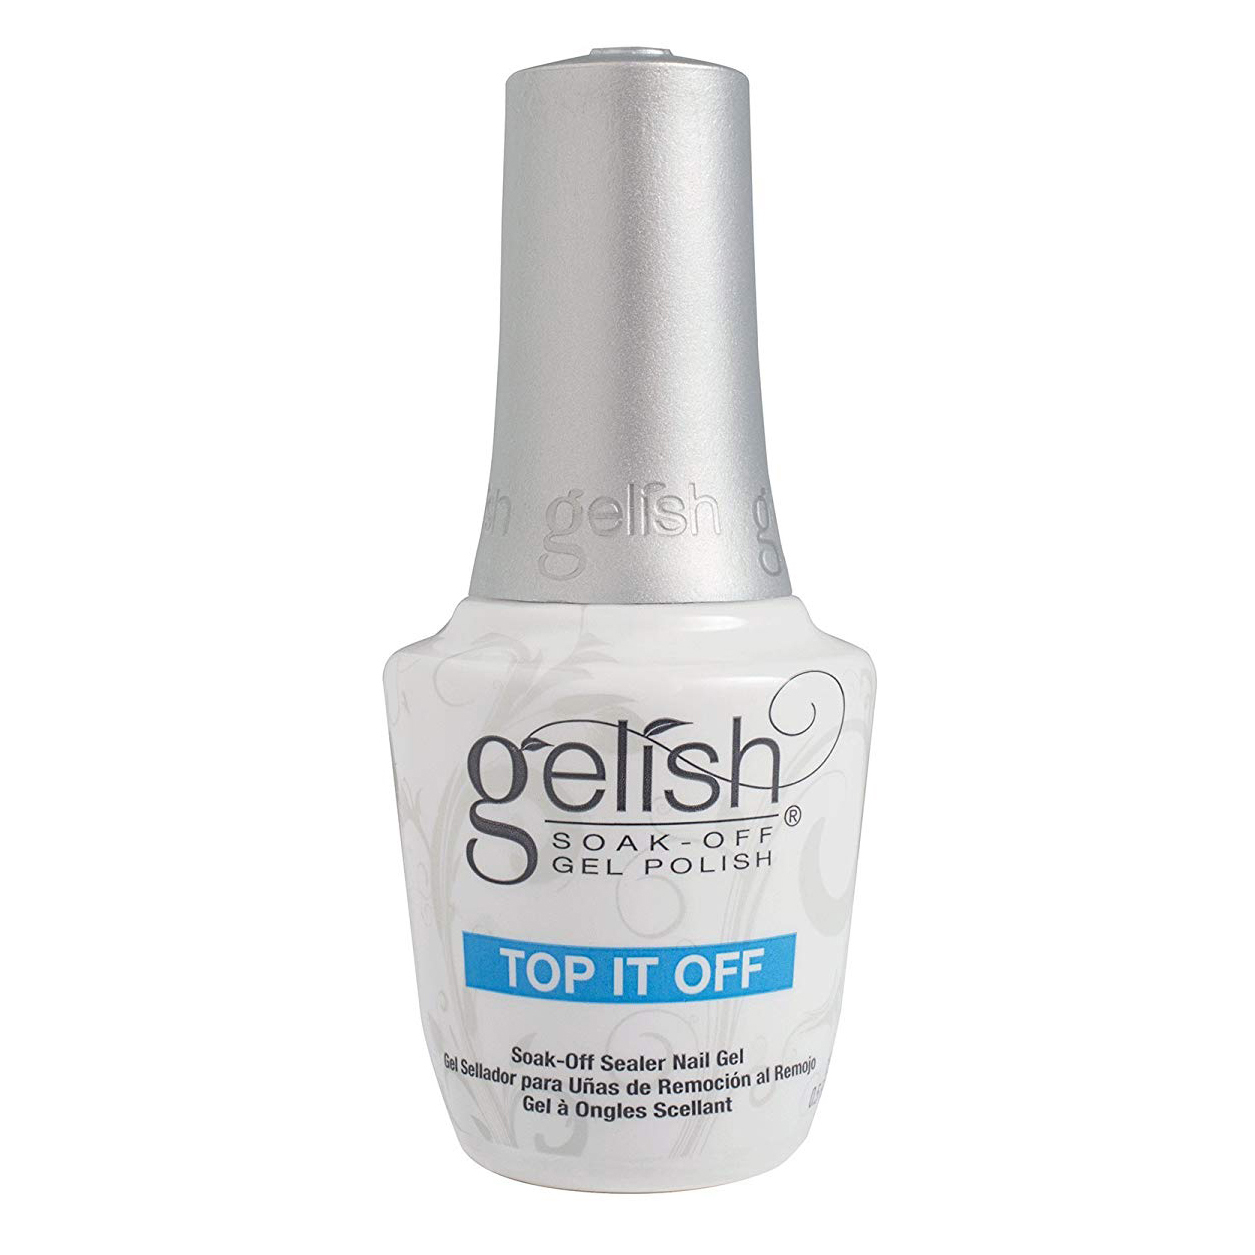 001-Gelish TOP IT OFF - .5 oz